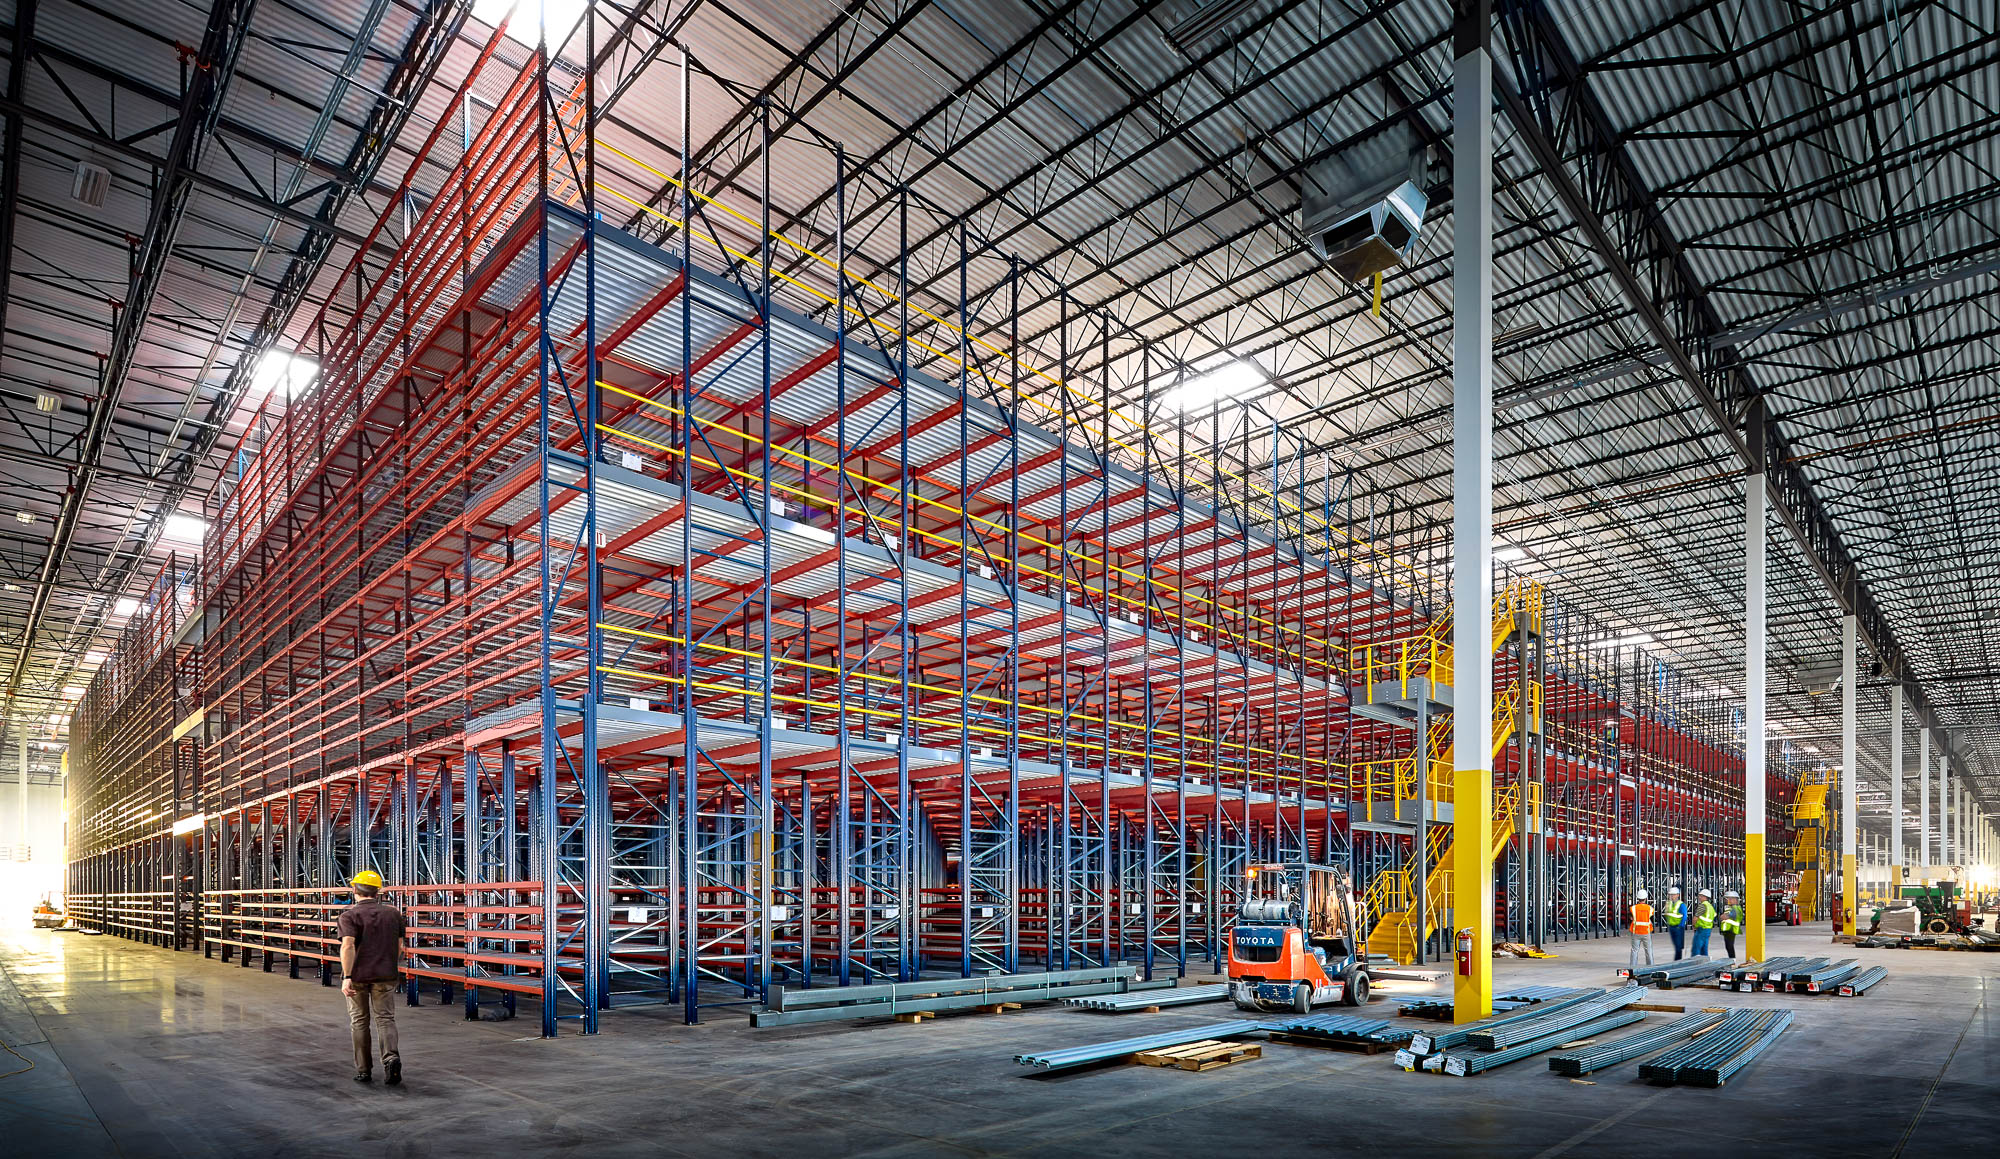 Huge Atlanta warehouse photographed by industrial photographer